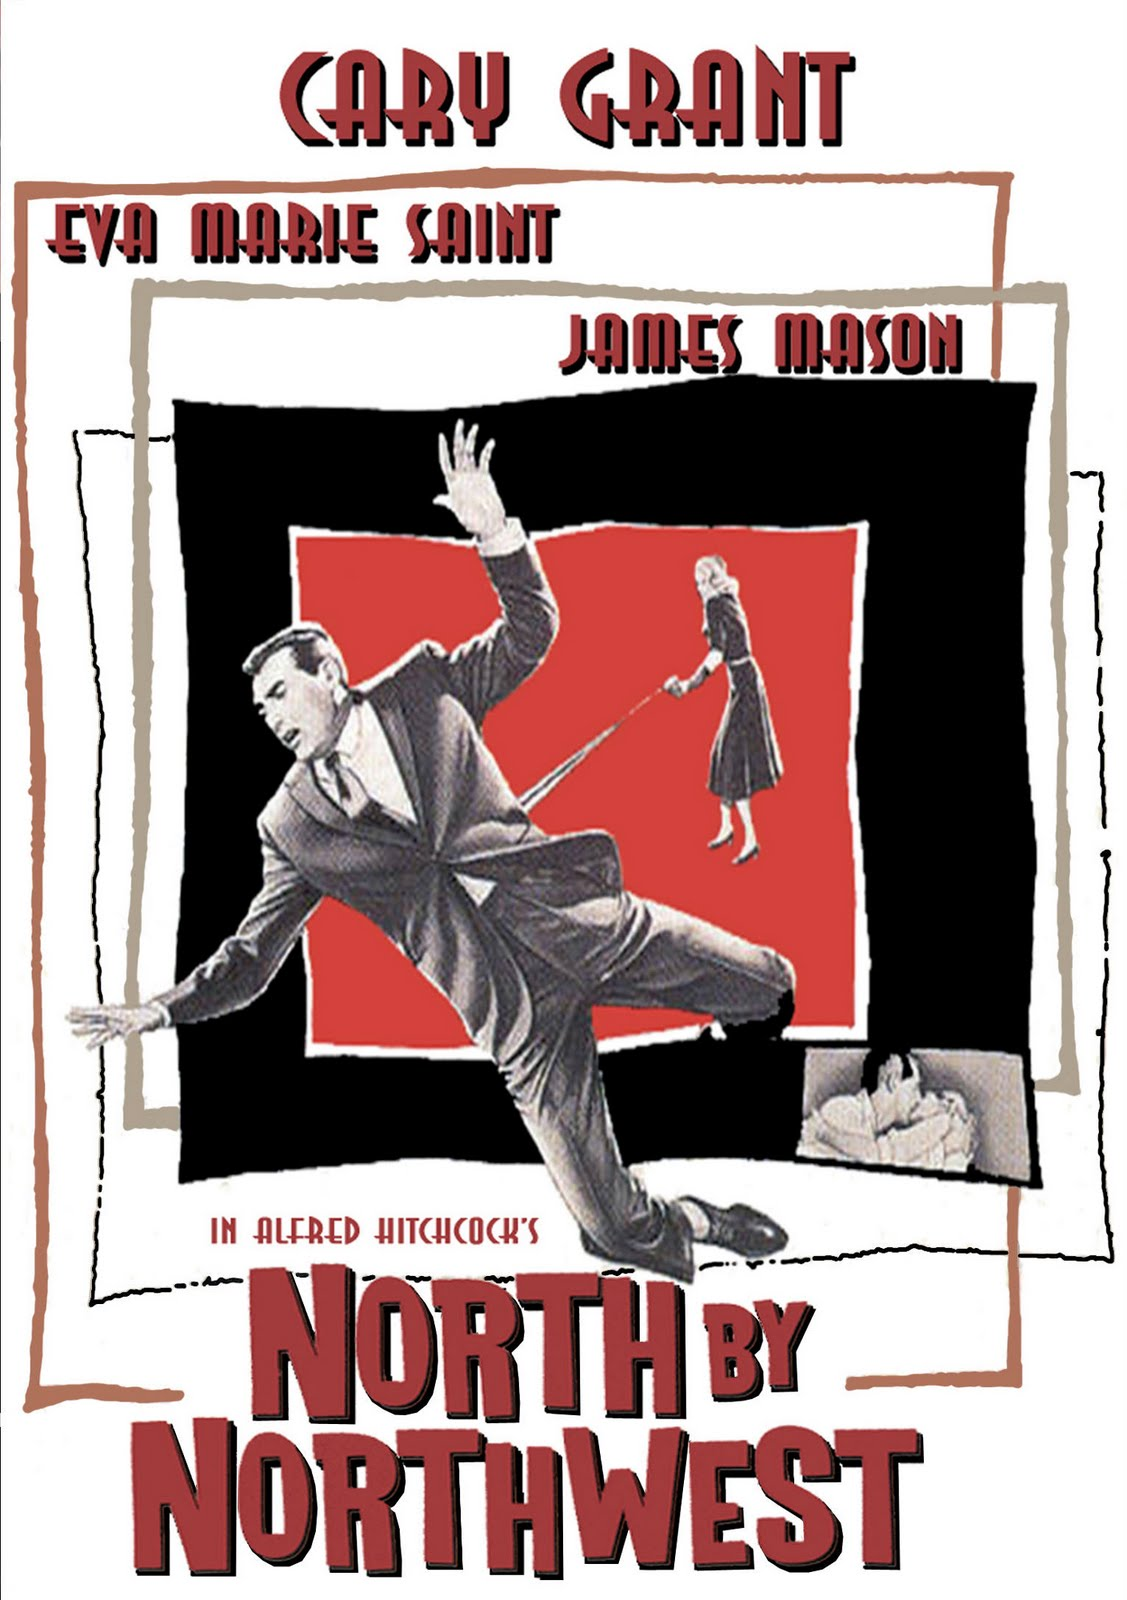 north by northwest a 1959 thriller On july 17, 1959, alfred hitchcock unveiled his latest suspense thriller, north by northwest, in theaters in los angeles the film, starring cary grant and eva marie saint, was nominated for three .